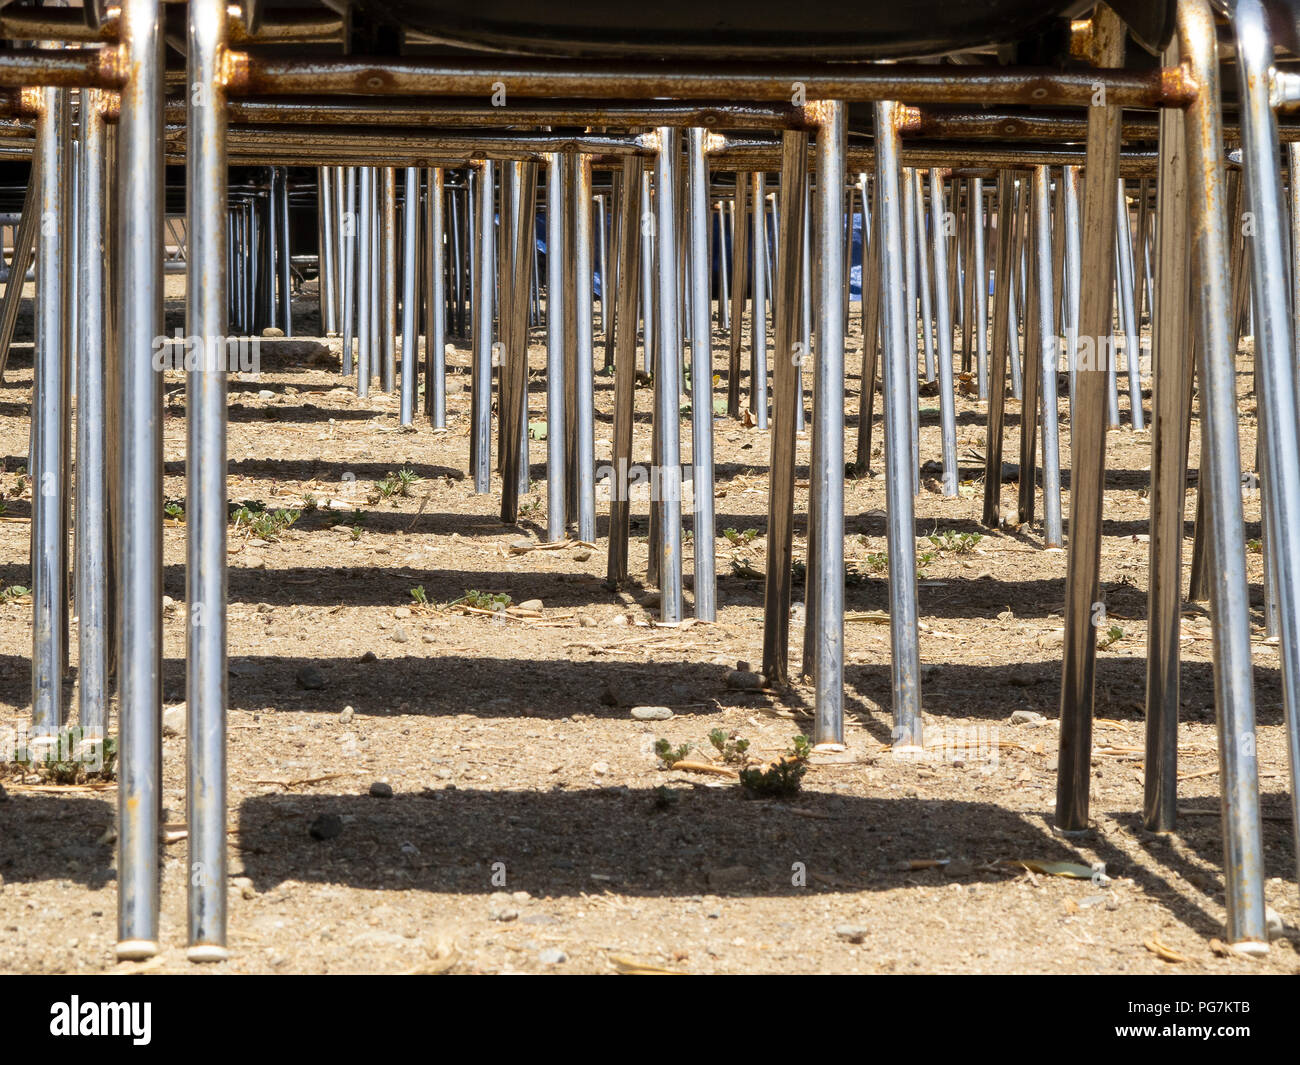 Calabria (Italy): the metal legs of plastic chairs, seen from below, placed in an outdoor theater waiting for the public - Stock Image